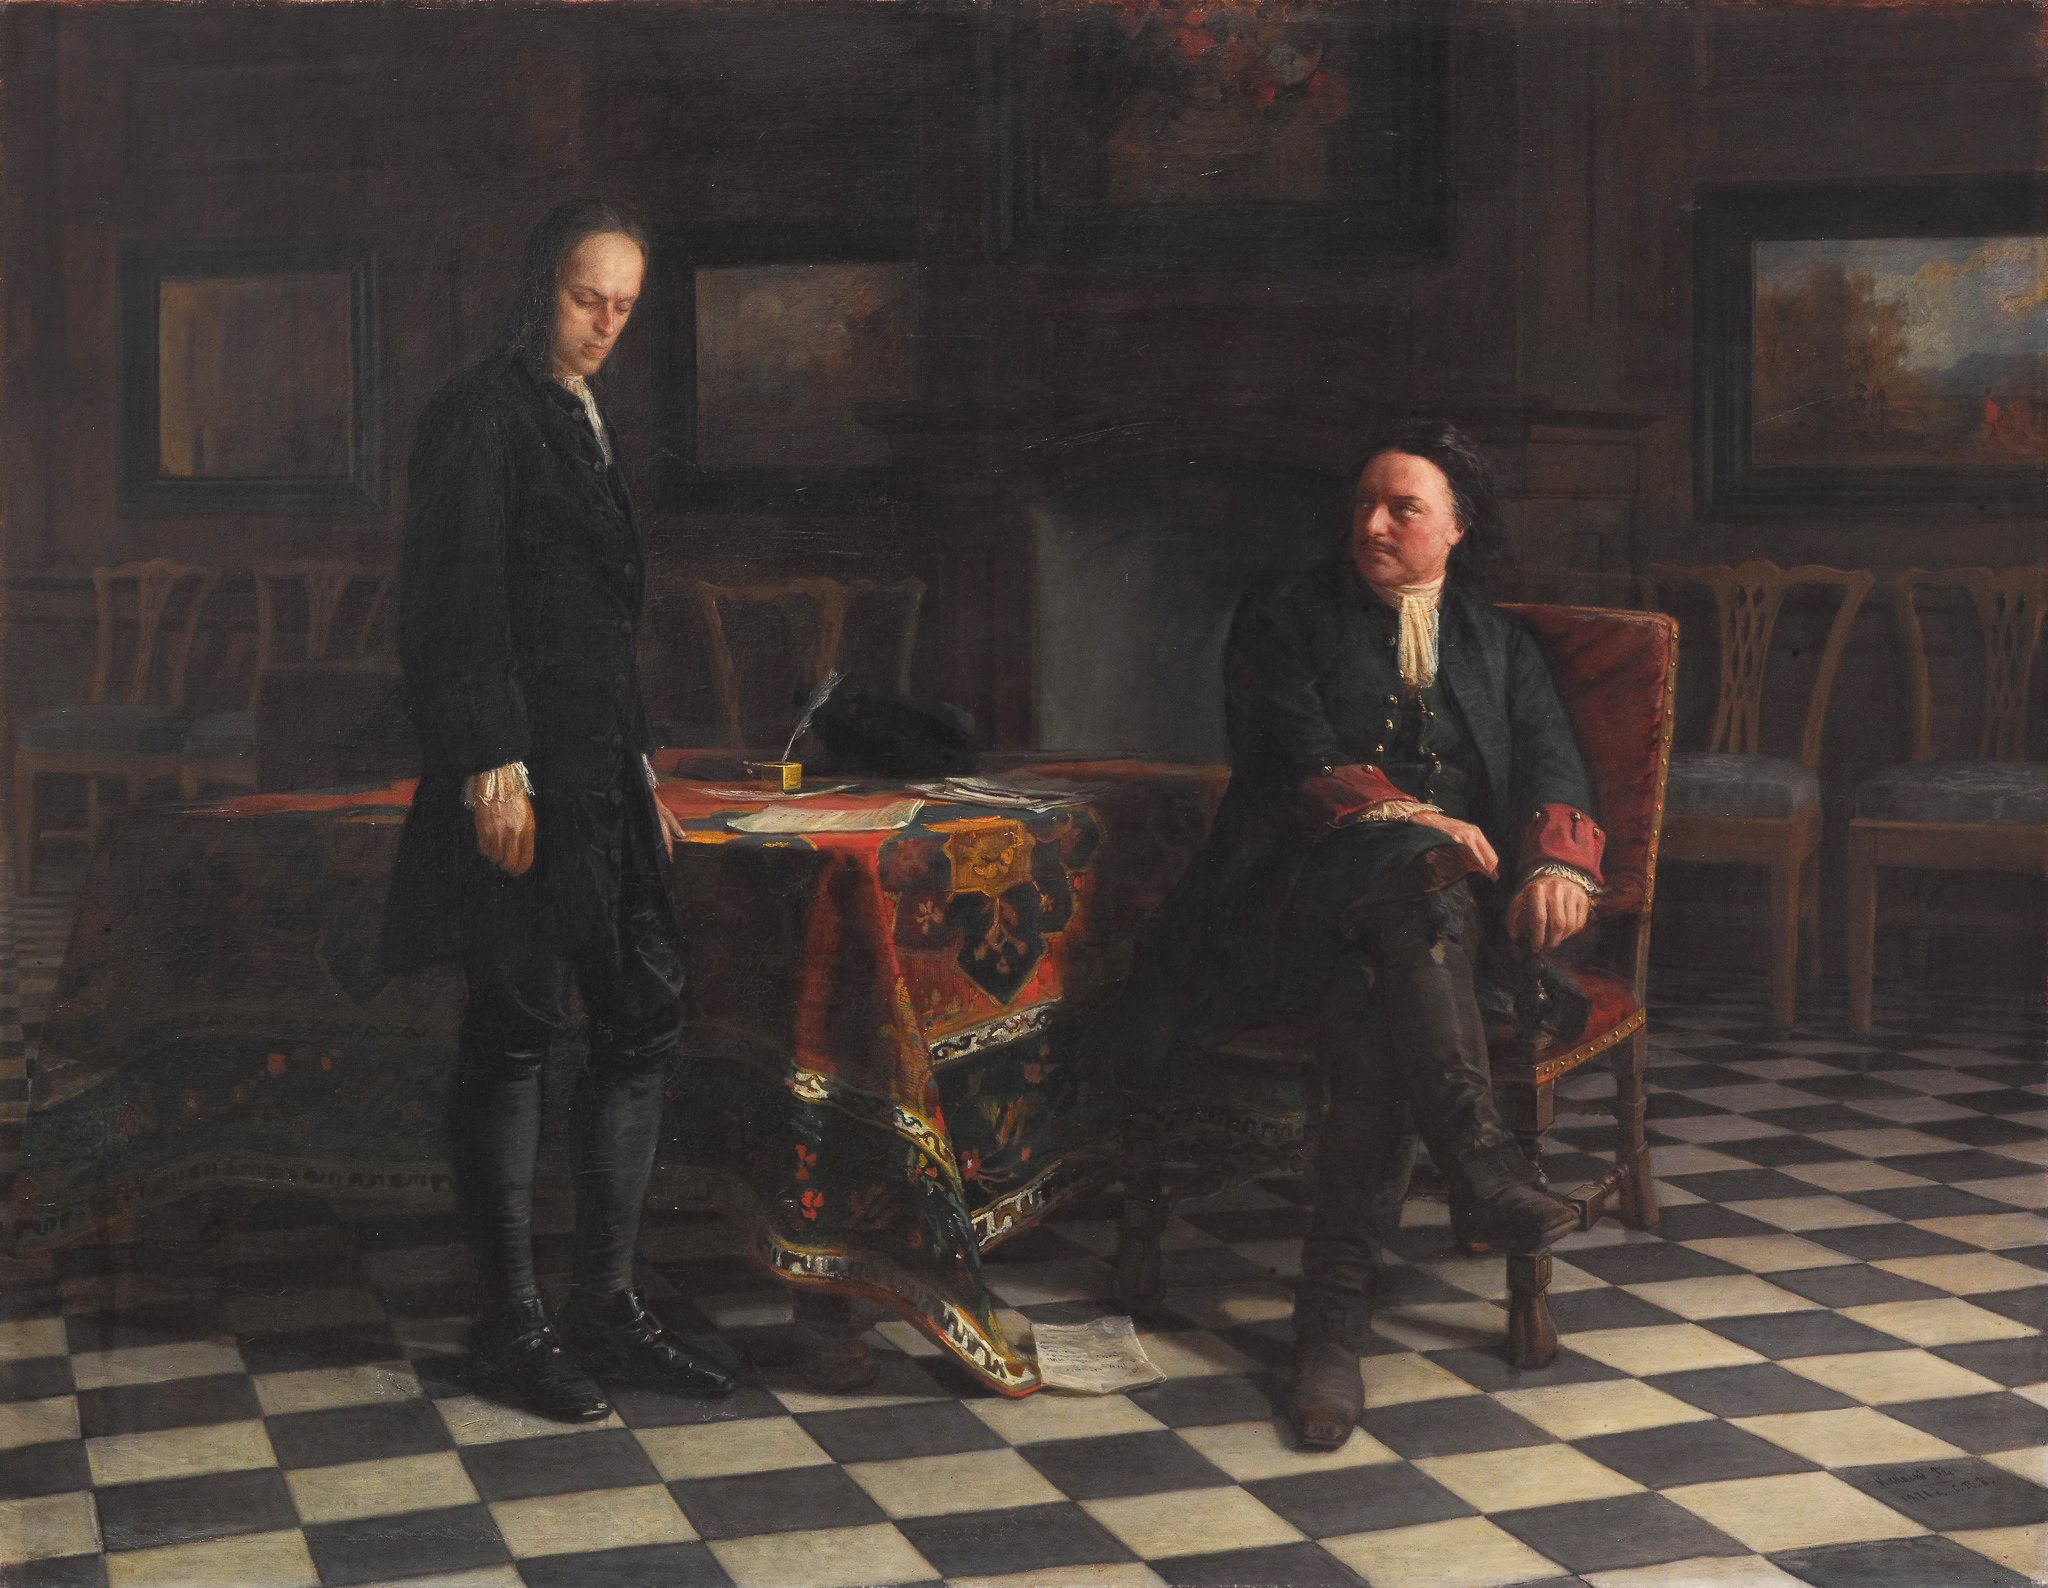 http://upload.wikimedia.org/wikipedia/commons/5/50/Peter_the_Great_Interrogating_the_Tsarevich_Alexei_Petrovich.jpg